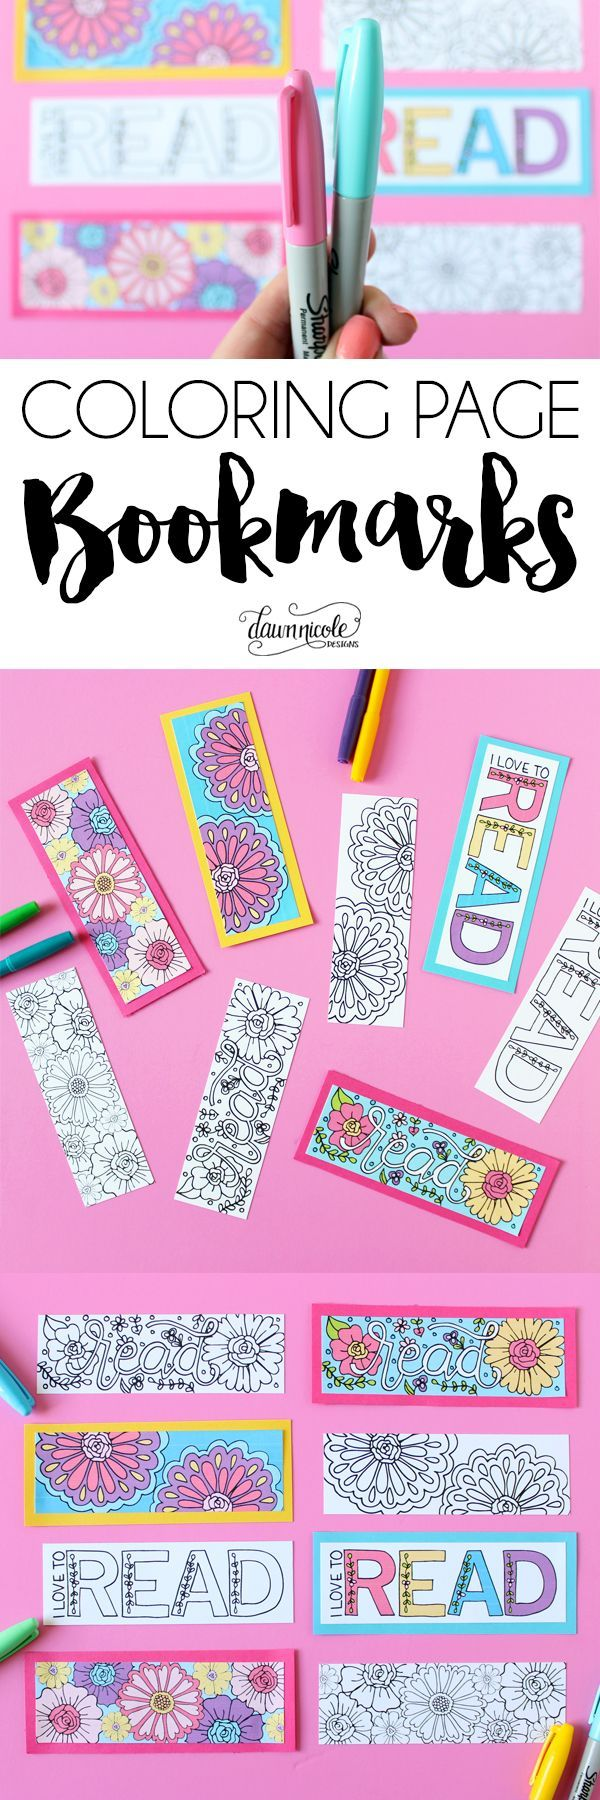 Summer coloring pages for middle school - Free Summer Coloring Page Bookmarks Color Your Own Or Grab The Already Colored